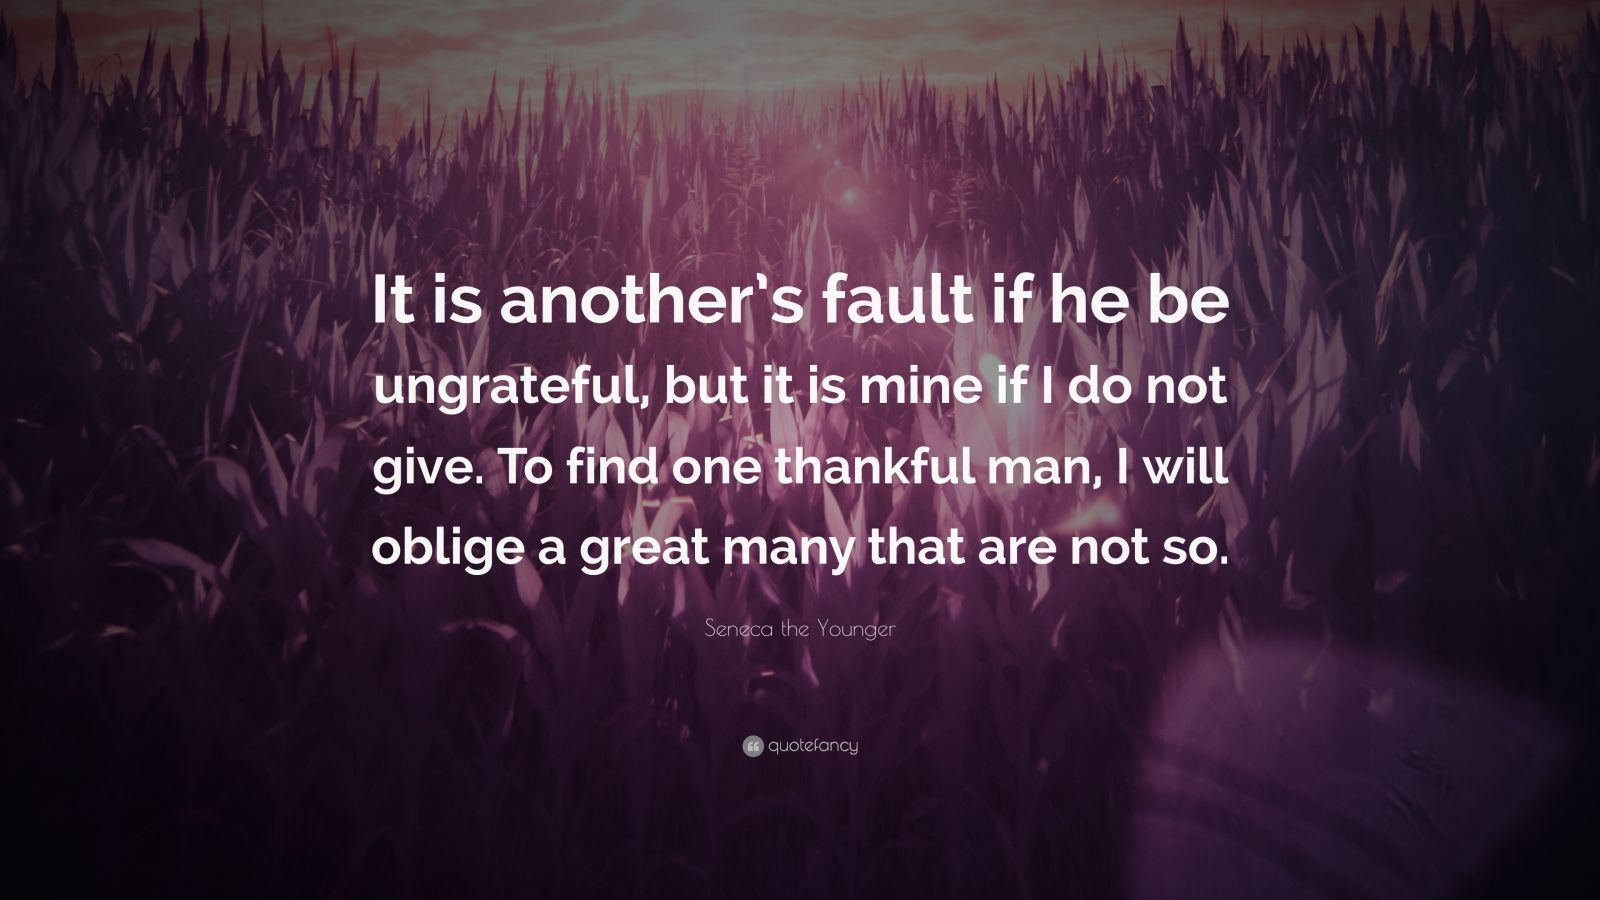 """Seneca the Younger Quote: """"It is another's fault if he be ungrateful, but it is mine if I do not give. To find one thankful man, I will oblige a great many that are not so."""""""